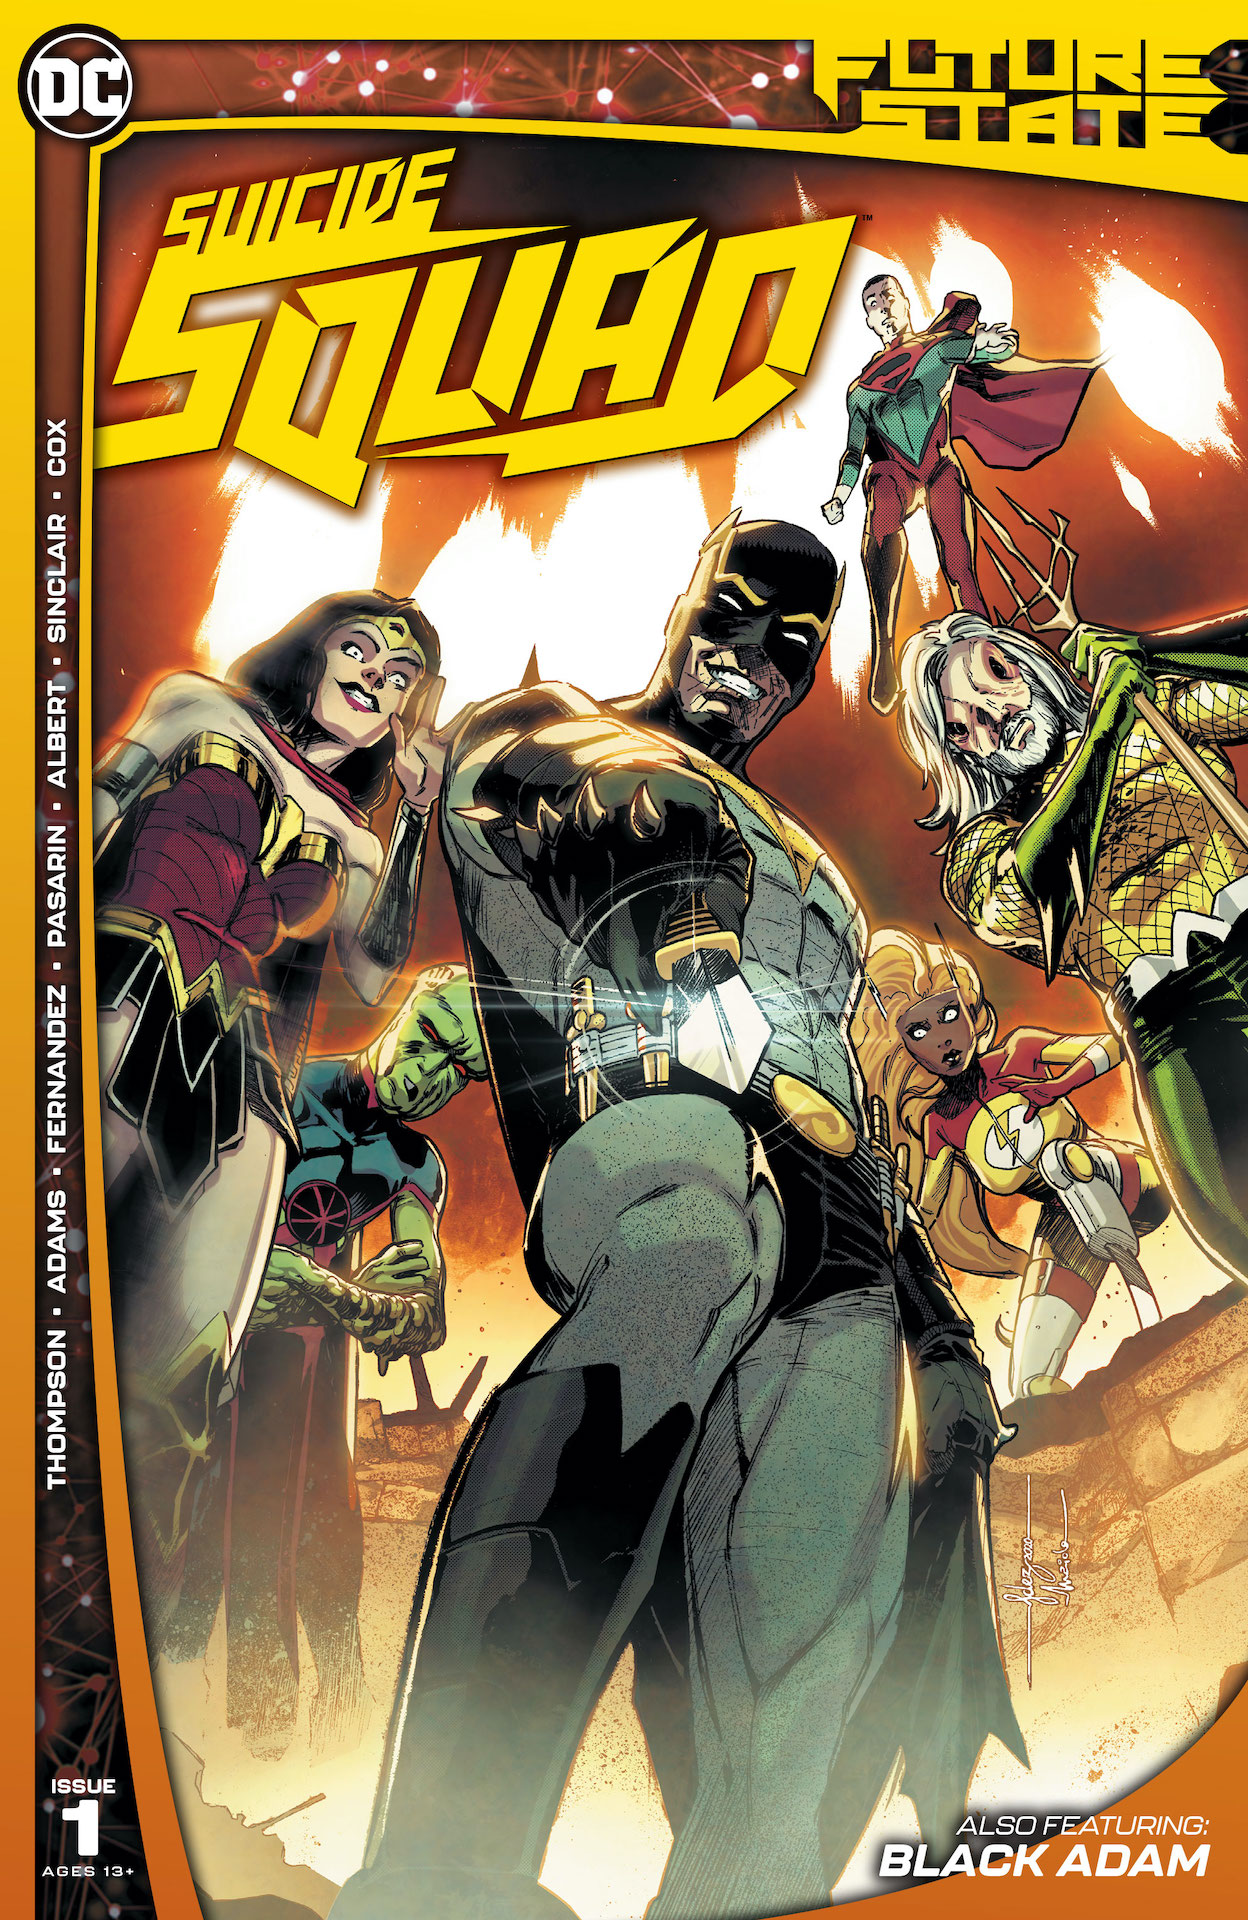 DC Preview: Future State: Suicide Squad #1